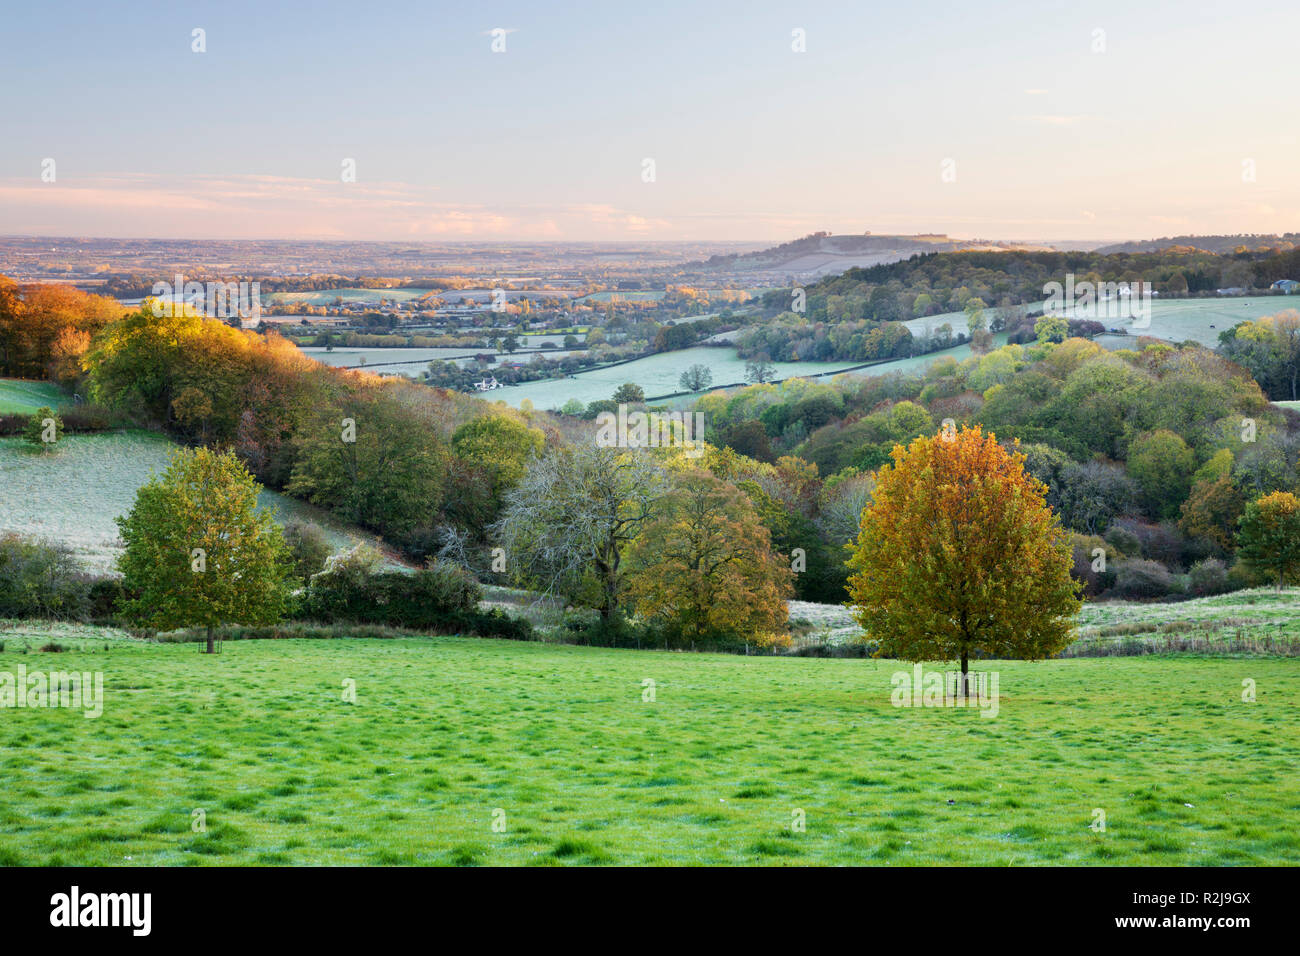 View over Meon Hill and Vale of Evesham on frosty autumn morning near Saintbury, Chipping Campden, Cotswolds, Gloucestershire, England, United Kingdom - Stock Image